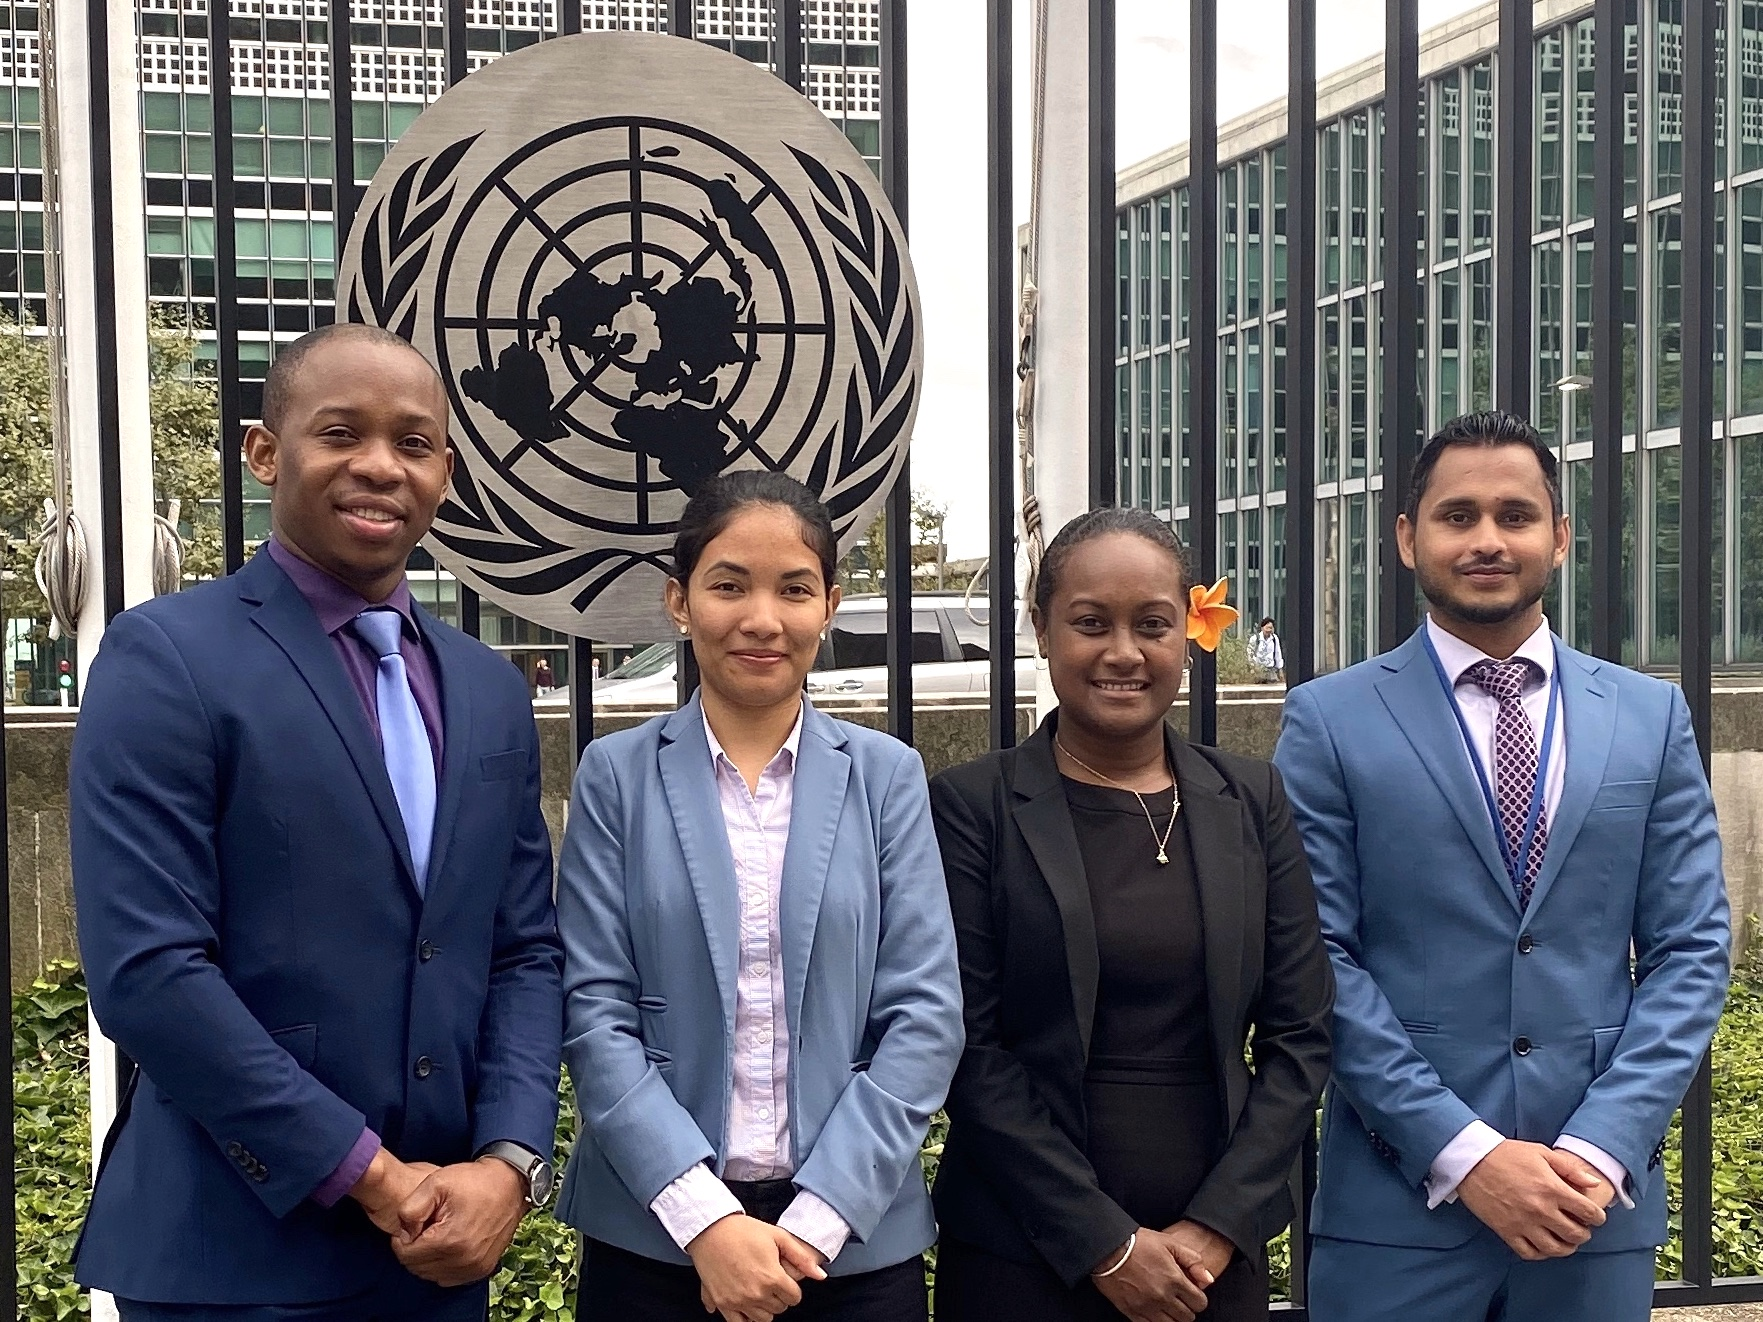 - October 2019: AOSIS Fellows representing Jamaica, Belize, Solomon Islands, and Maldives at UN HQ in New York. This is the sixth class of AOSIS fellows.